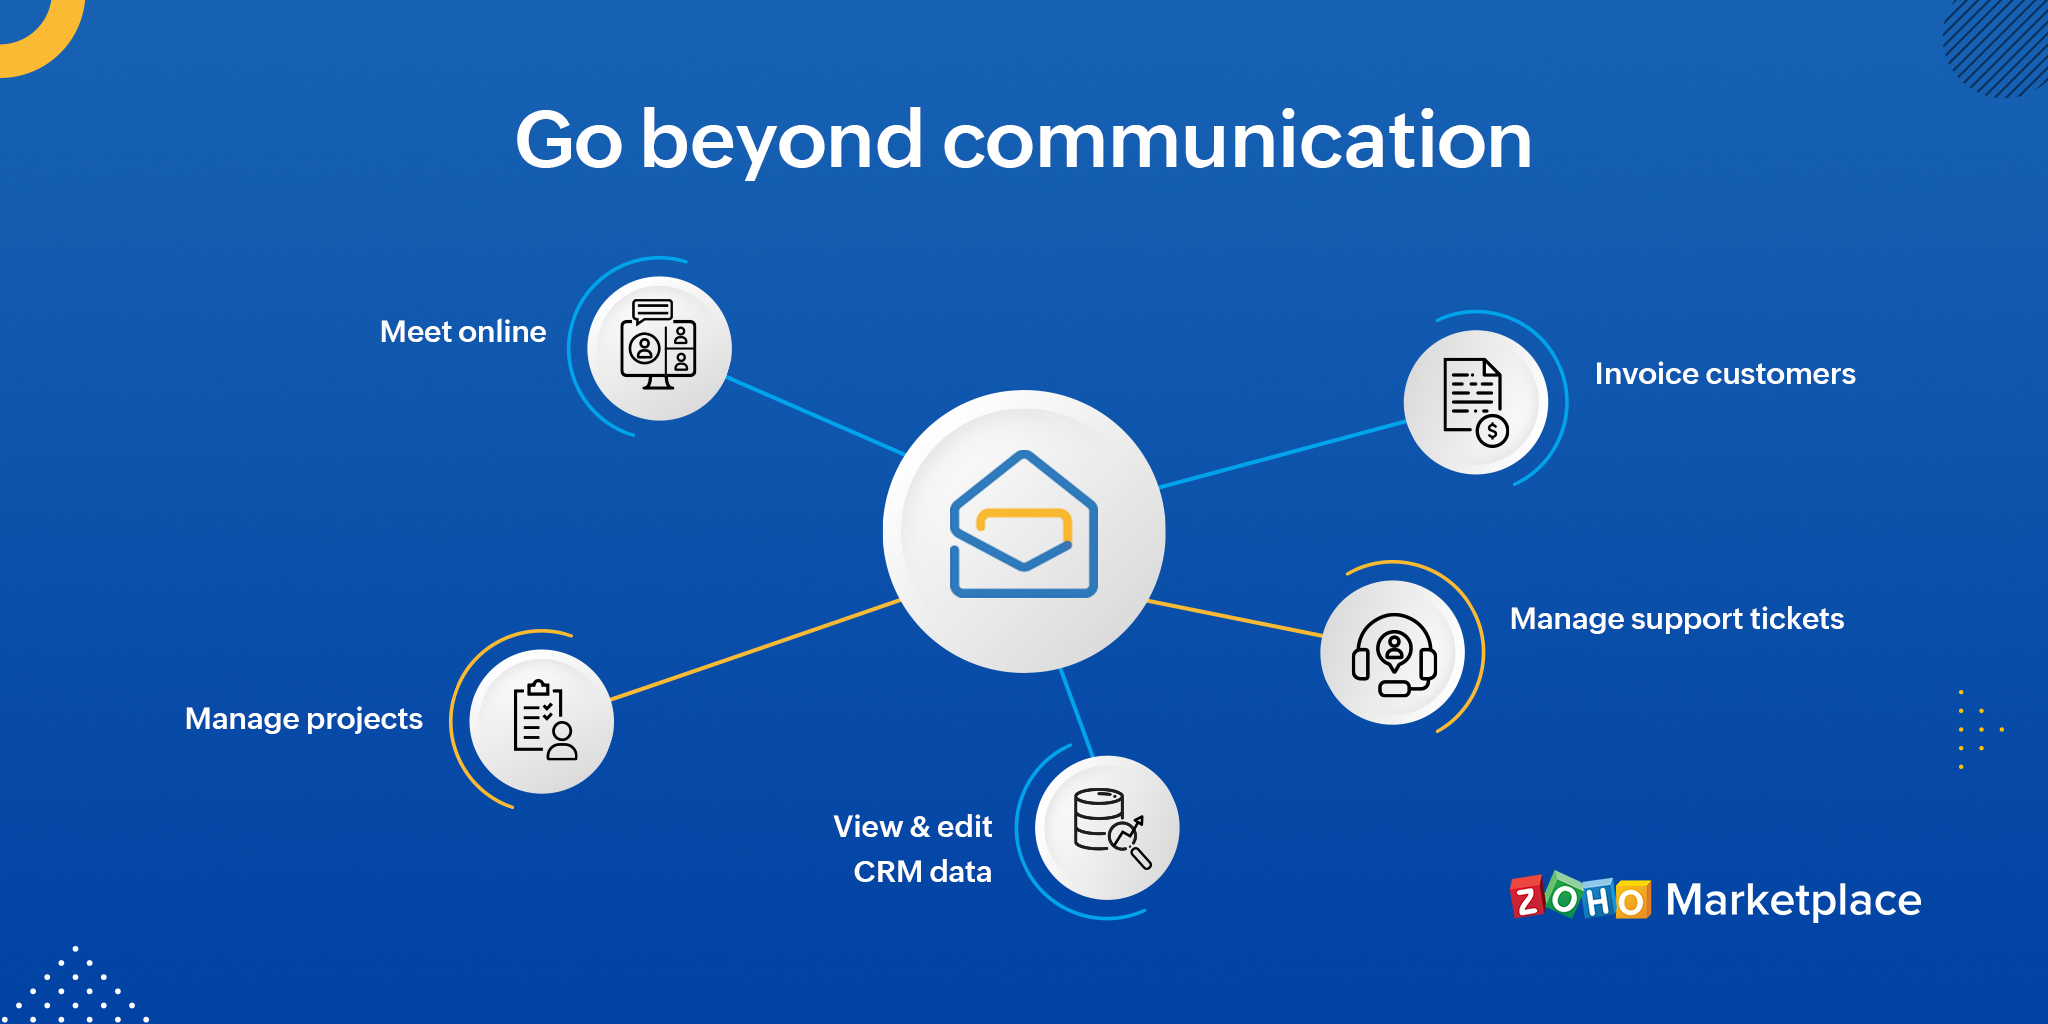 Beyond communication: Here are 5 other things you can do from your email